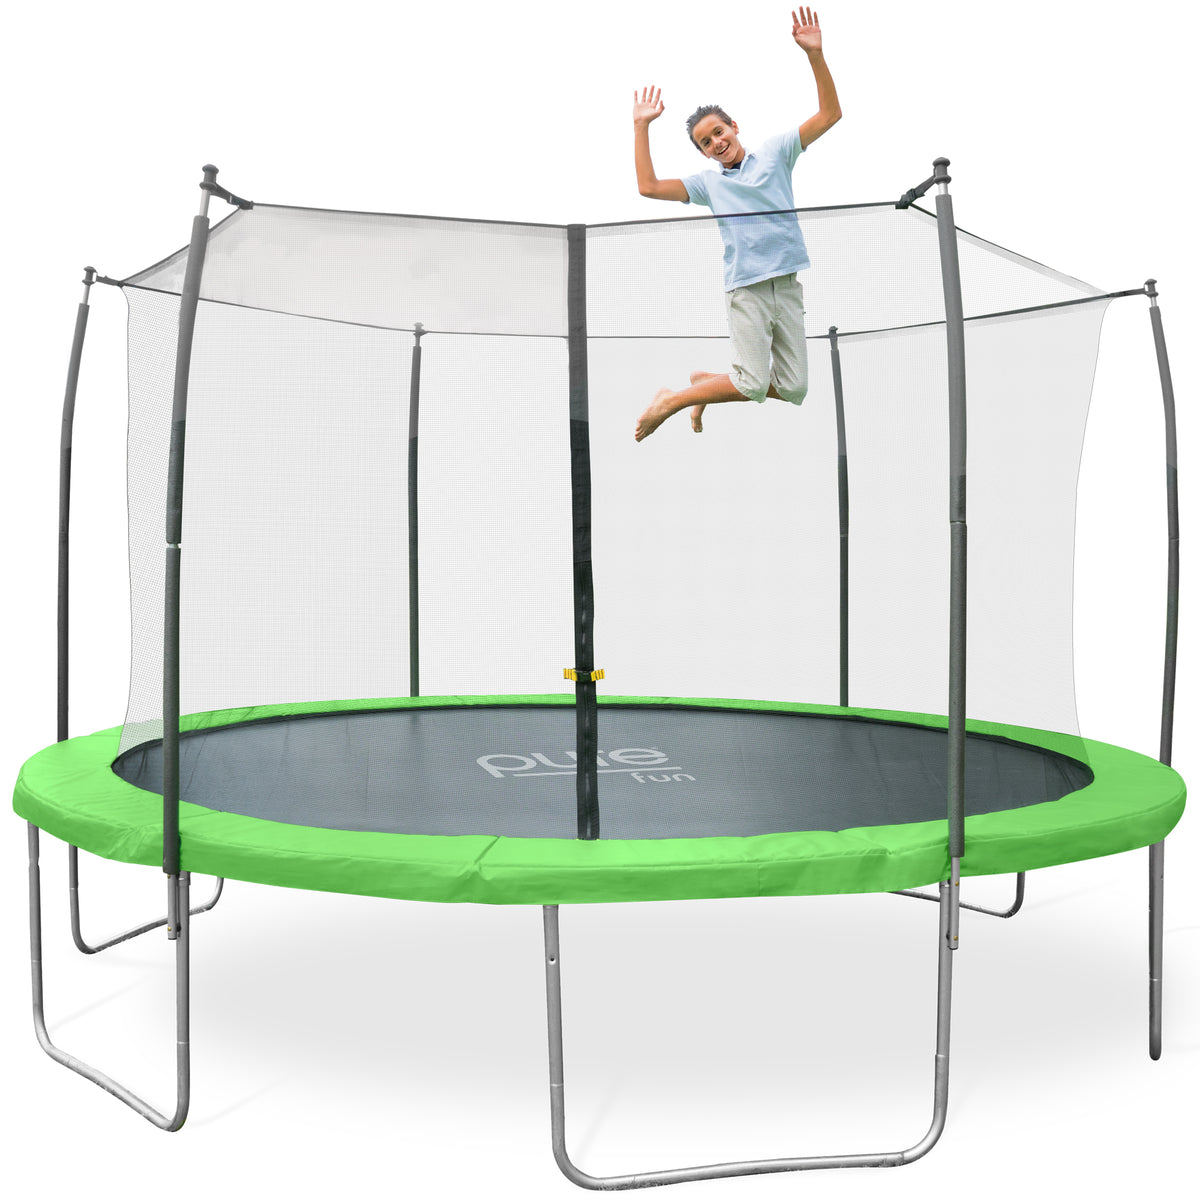 Trampoline Jumping Mat Fits 427cm 14 Ft: Dura-Bounce Outdoor Trampoline With Enclosure, 14-Foot